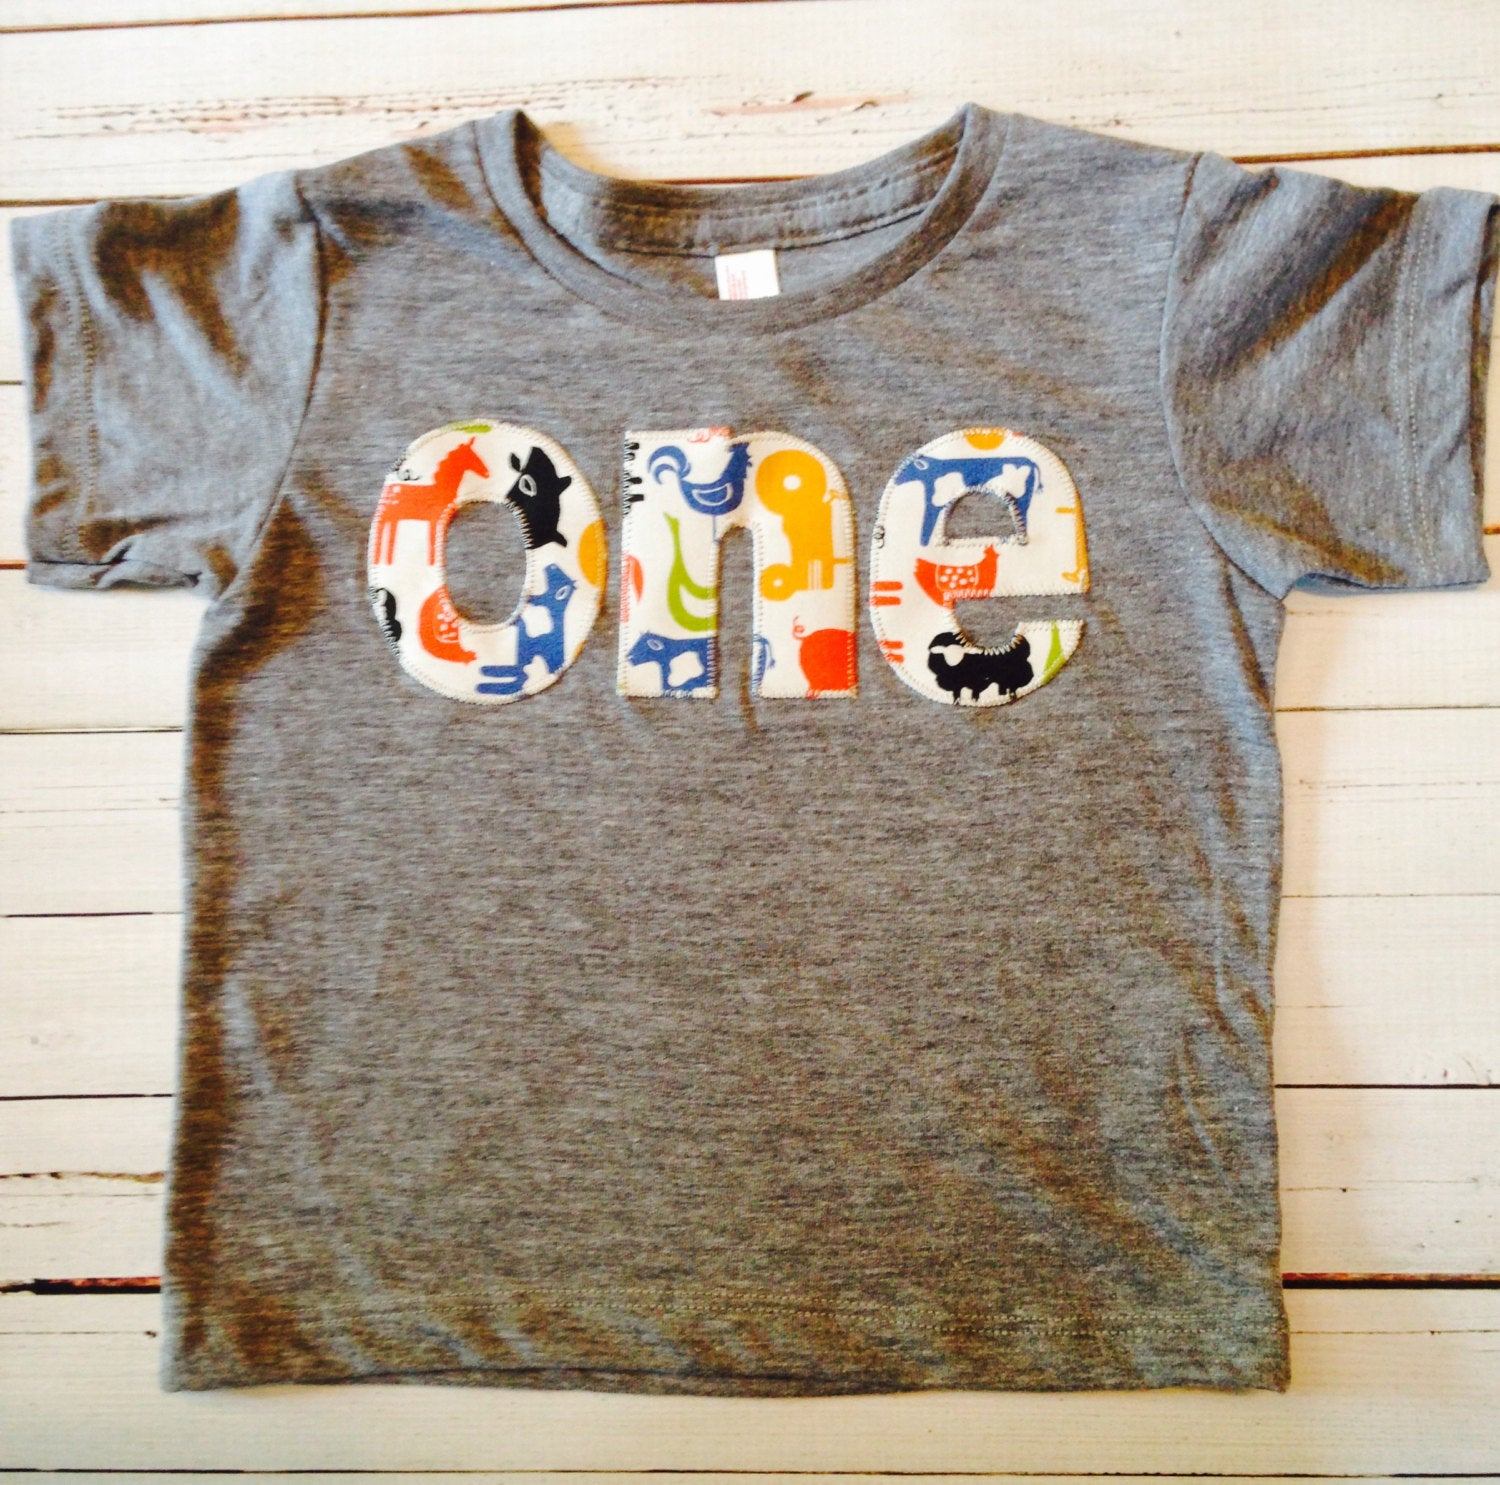 one Farm Birthday Shirt- Boys Birthday T Shirt - Tractors and Animals Cow Sheep Pig Chicken Rooster yellow red blue birthday outfit cake